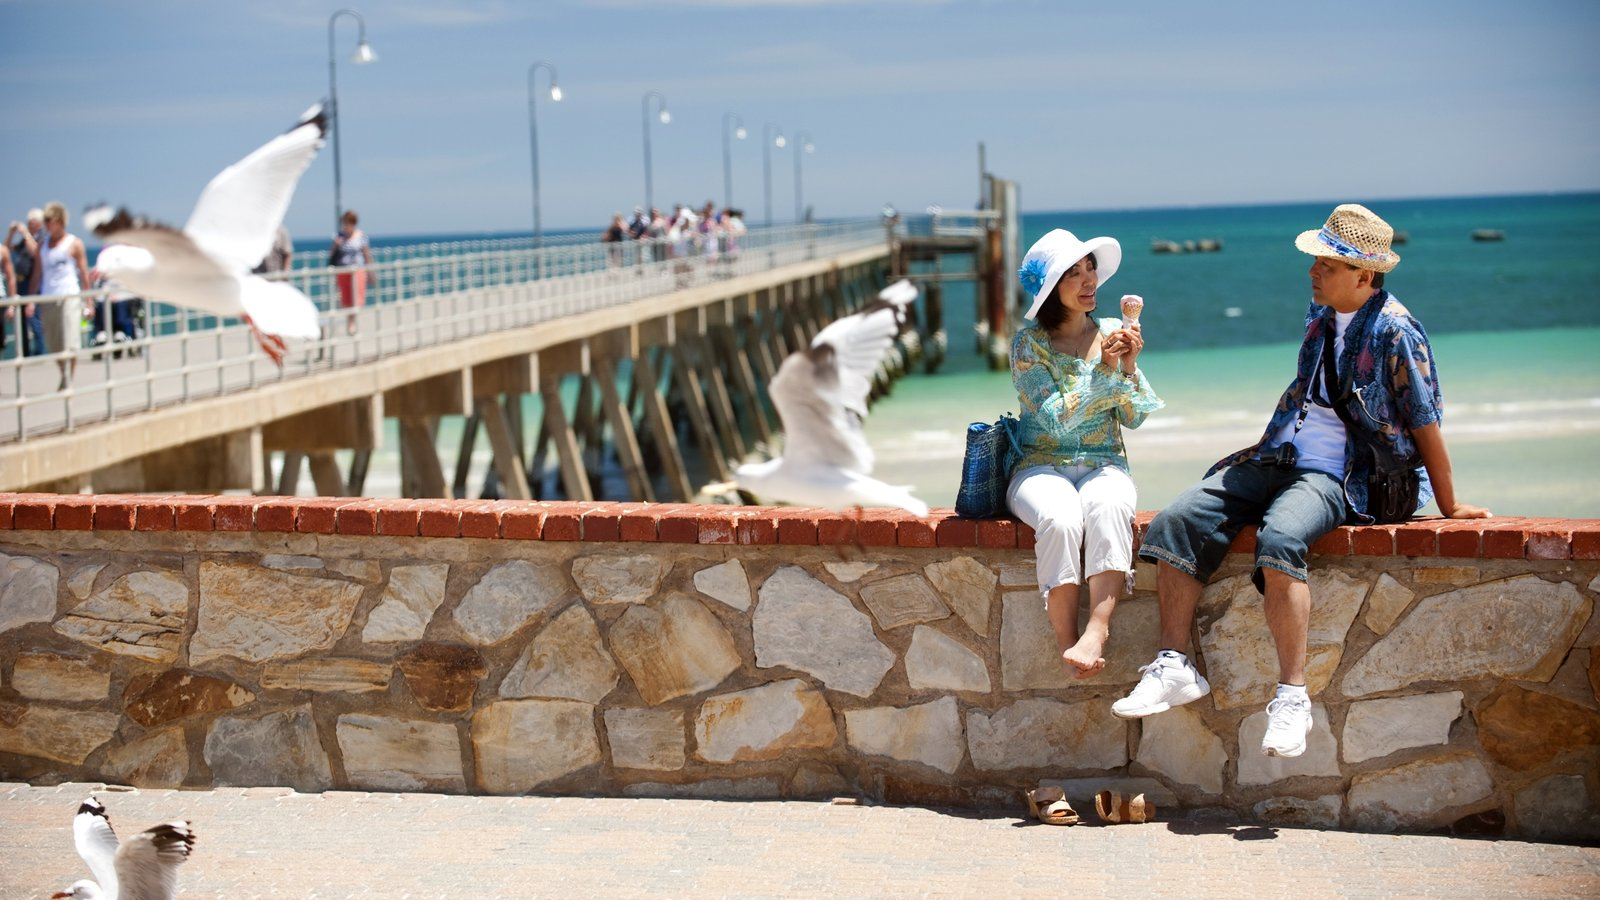 Glenelg Beach featuring views, bird life and general coastal views